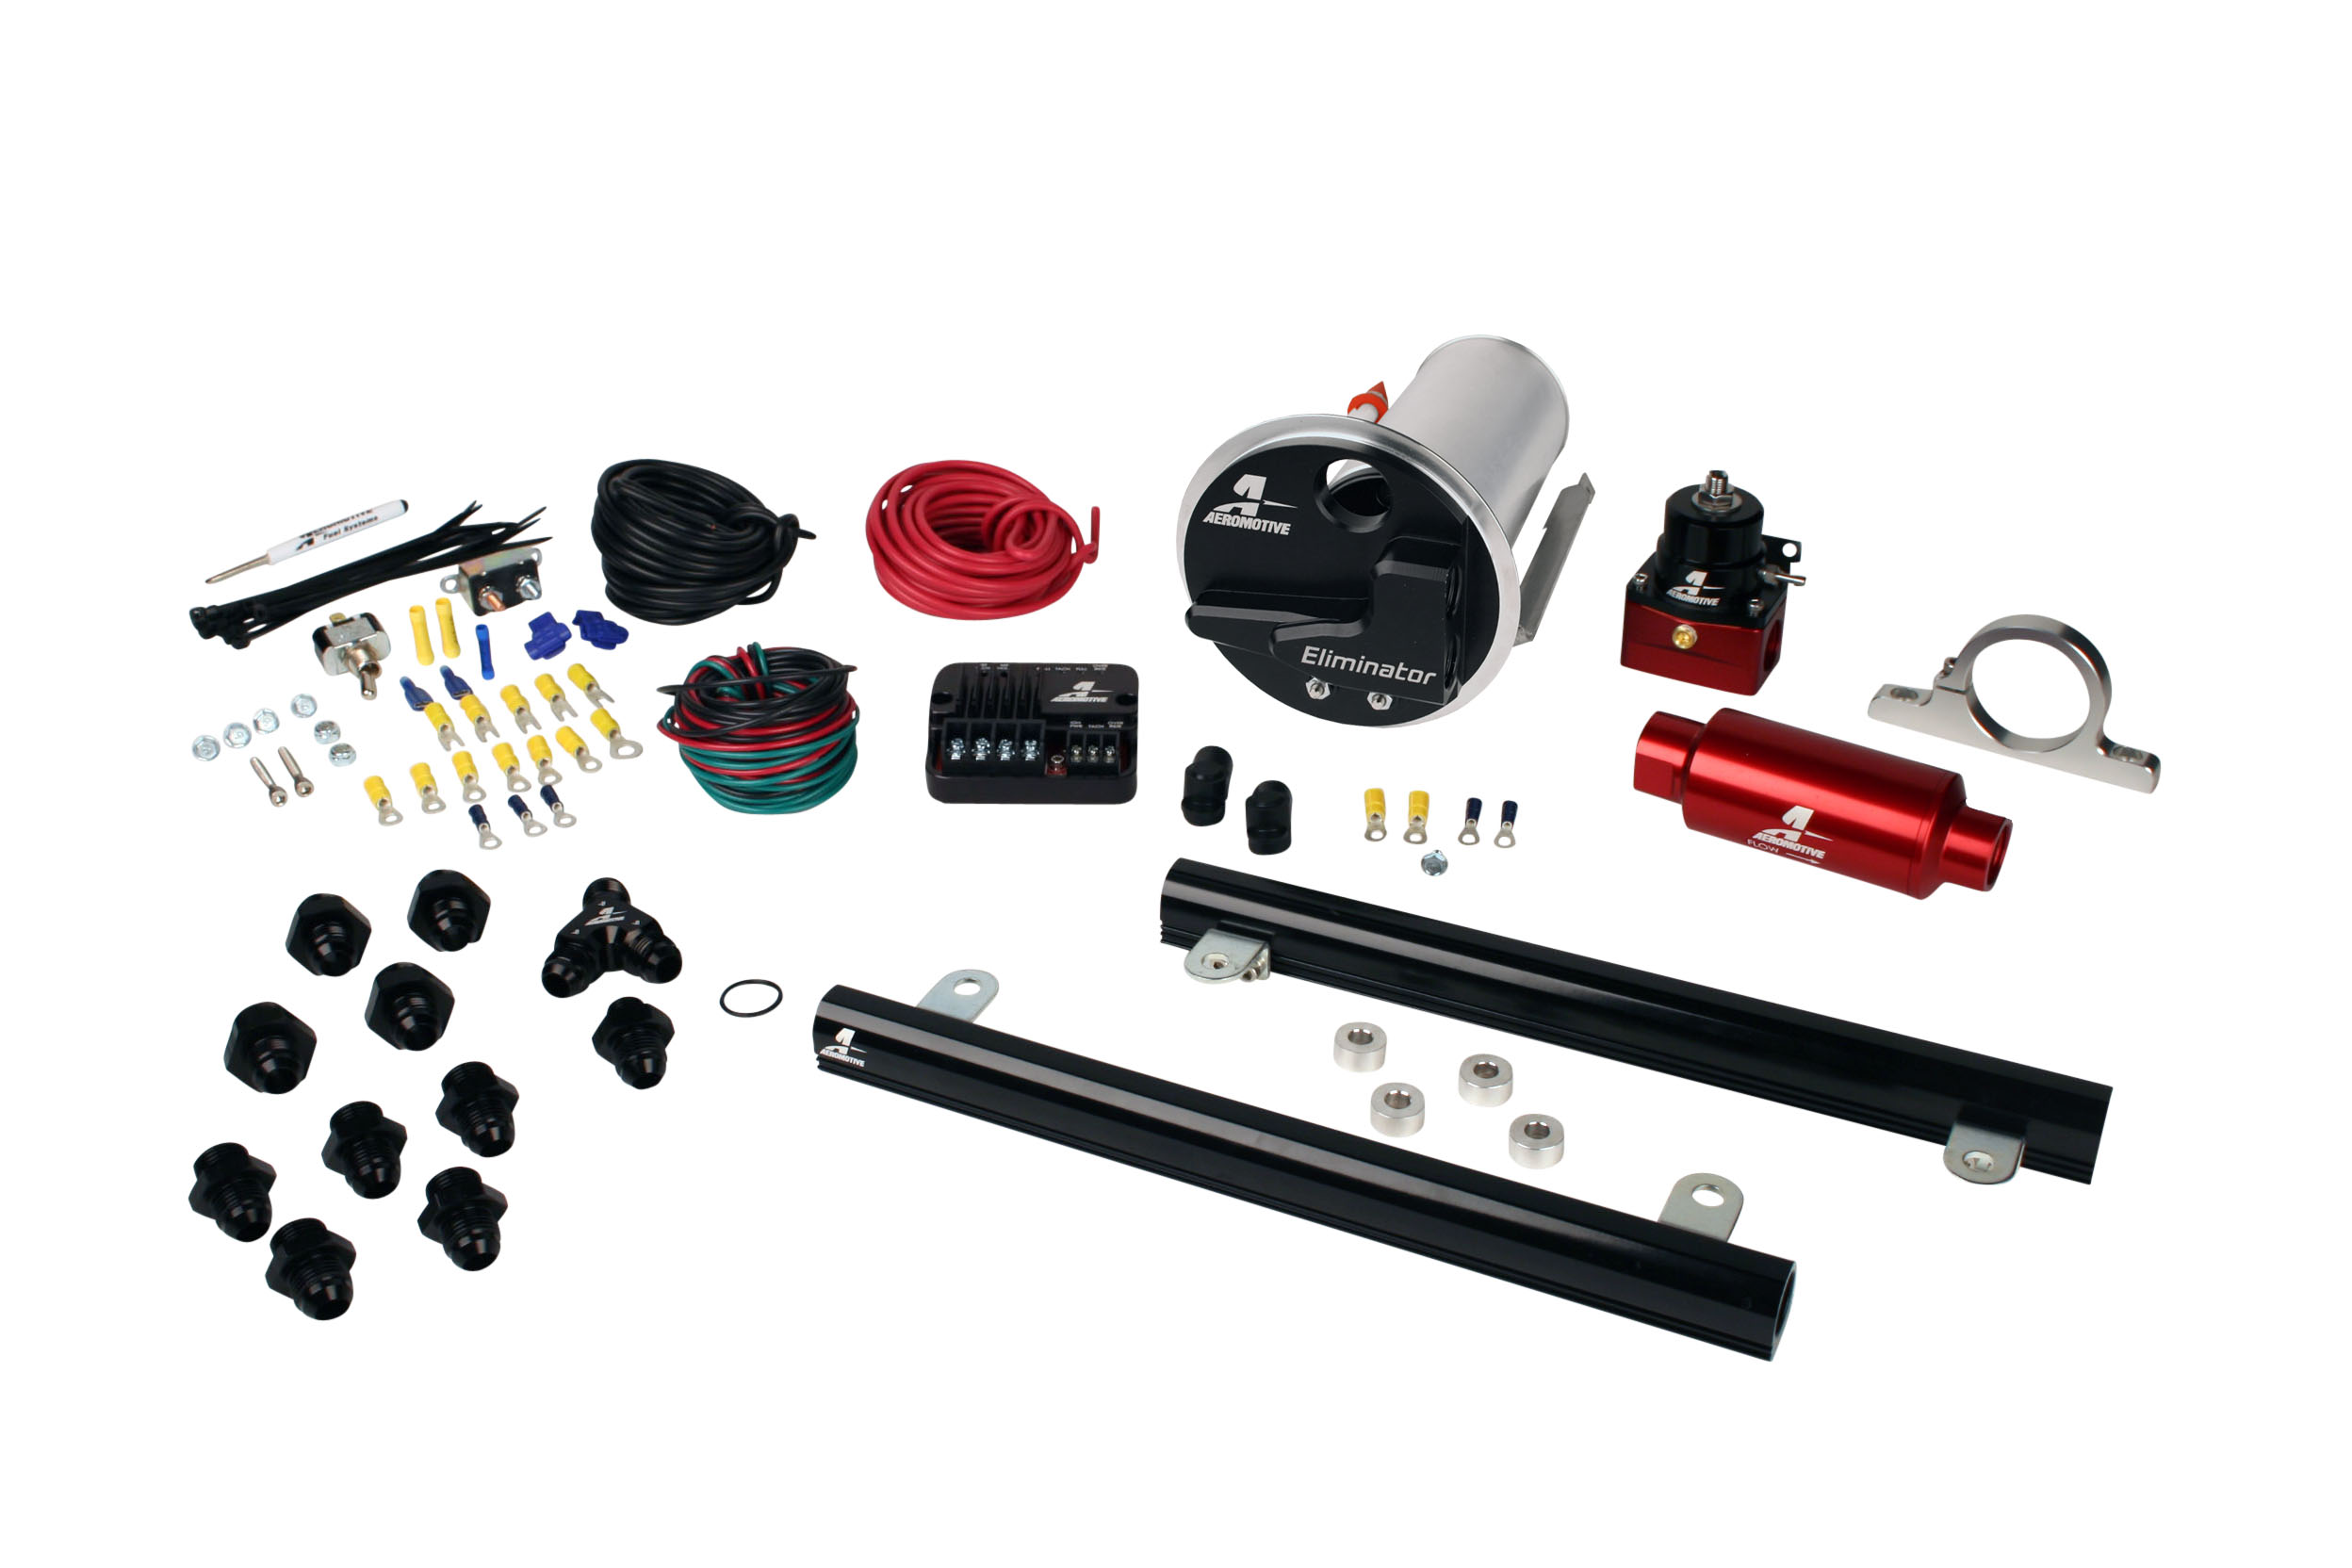 2007-2012 Ford Mustang Shelby GT500 Aeromotive Stealth Eliminator Street Fuel System w/5.4L CJ Fuel Rails